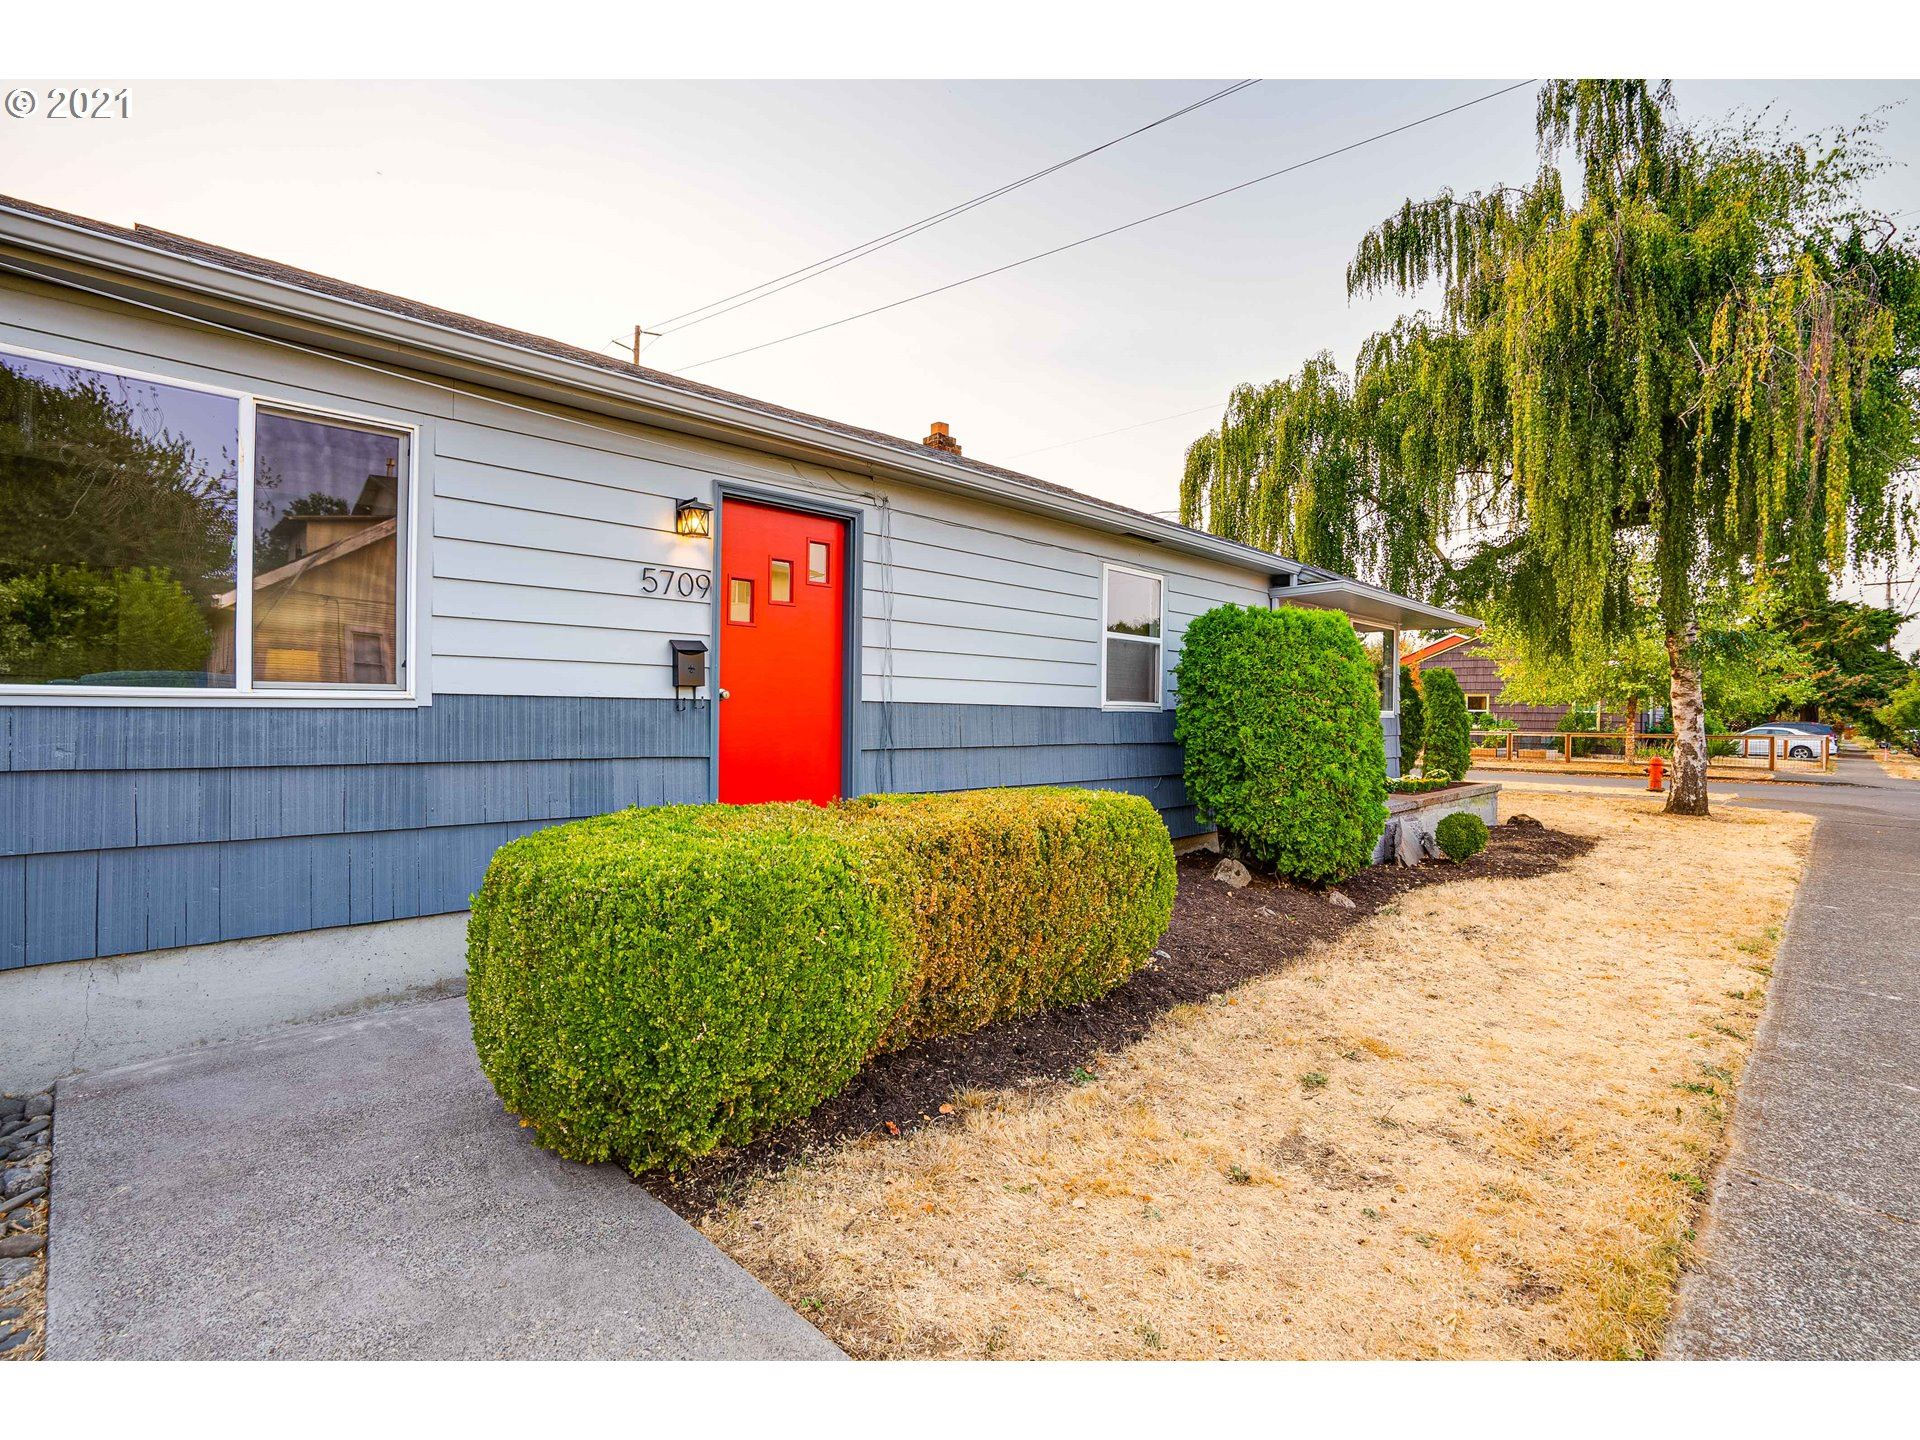 5709 SE 65TH AVE, Portland, OR 97206 - MLS#: 21483916